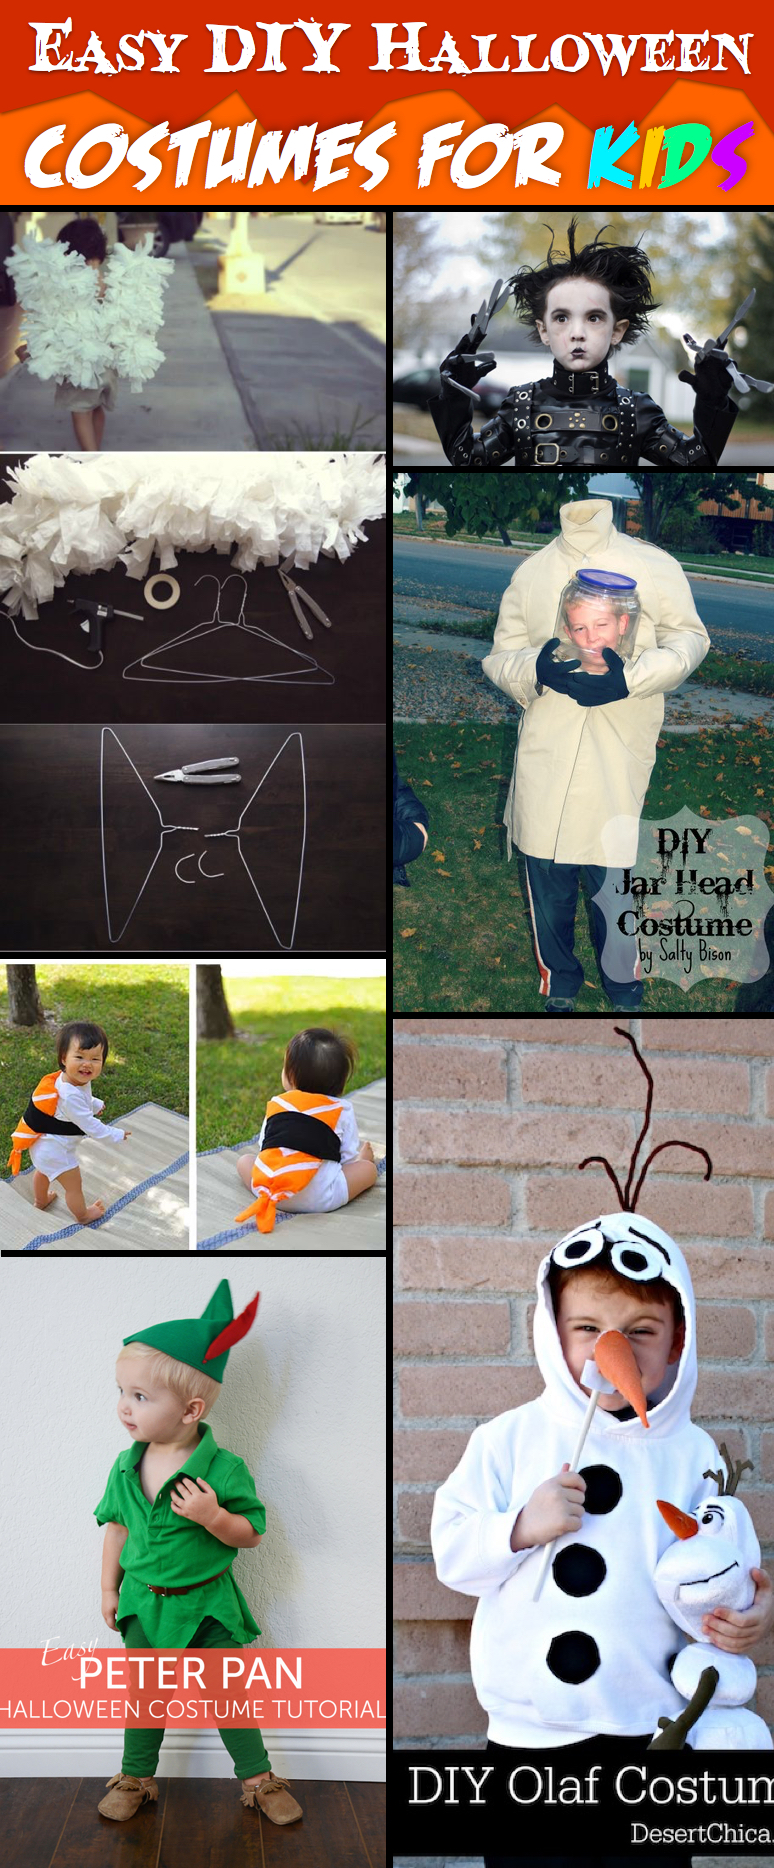 30+ Incredibly Awesome Yet Easy DIY Halloween Costumes For Kids